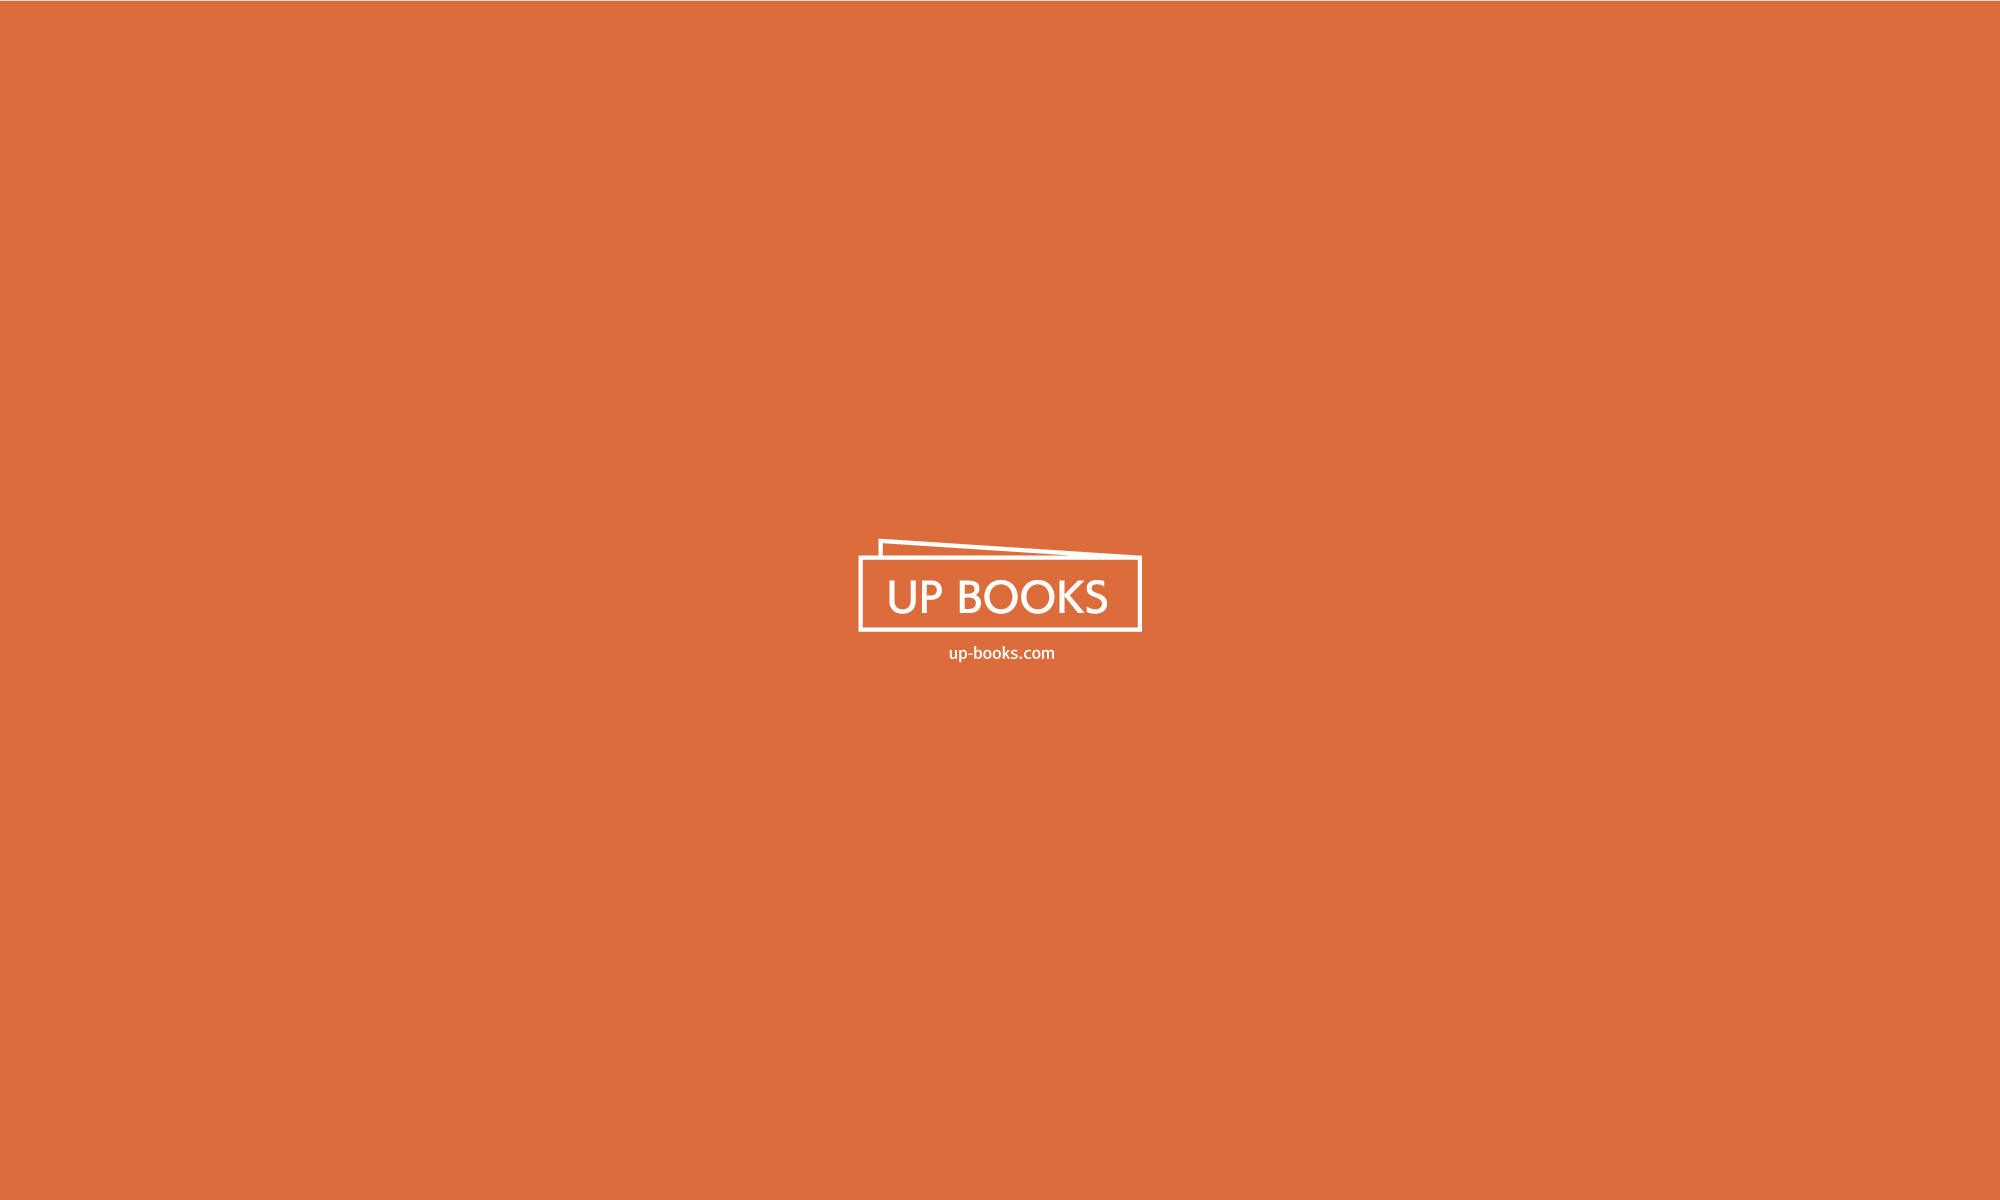 up-books.com